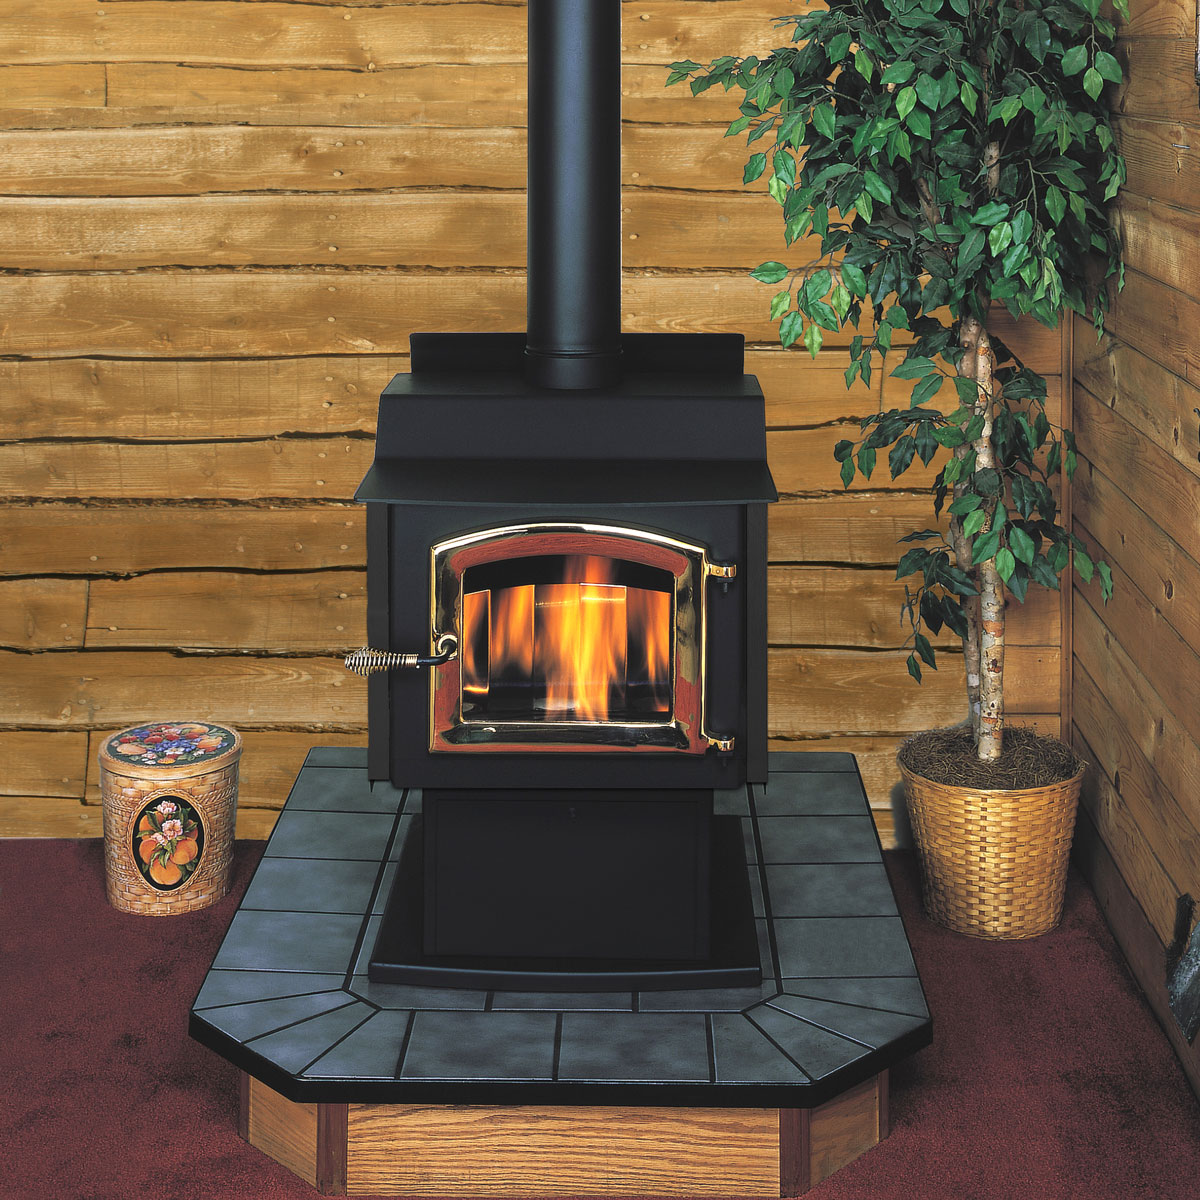 Oil Classic Oil Stove, High Effeciency Stove From Kuma Stoves